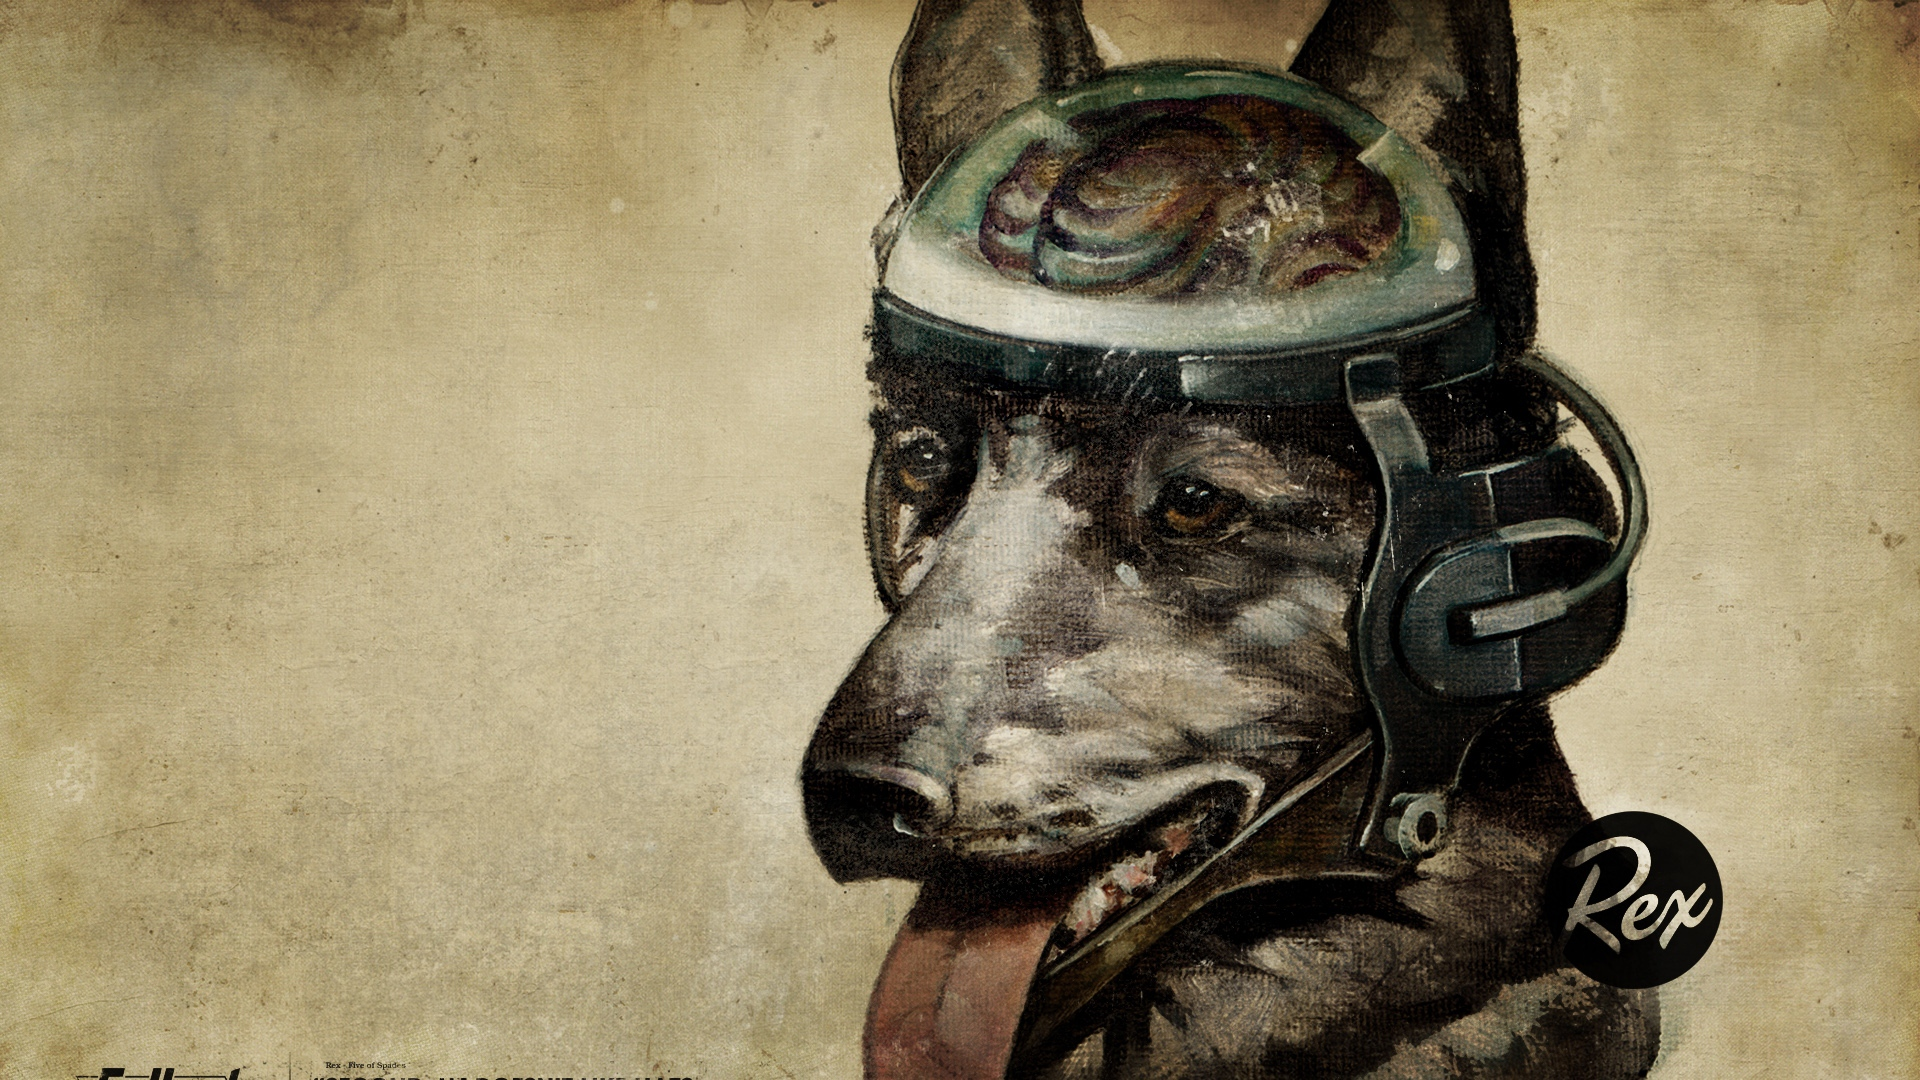 Download Wallpaper 1920x1080 Fallout Quote Dog Look Full HD 1080p